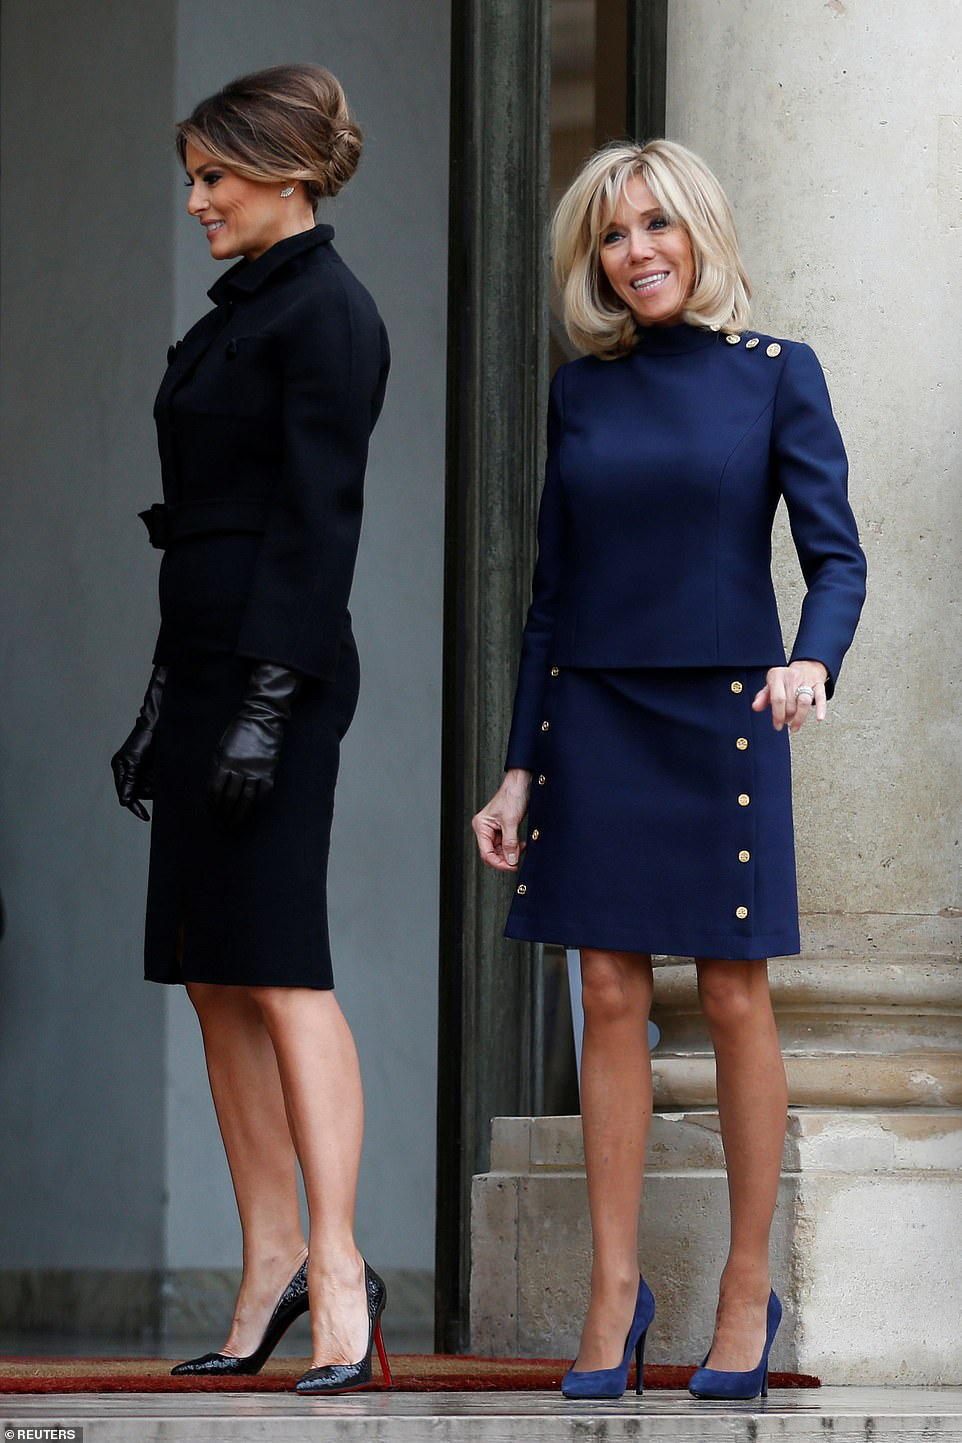 The pair looked pleased as they met prior to their lunch with U.S President Donald Trump and French President Emmanuel Macron at the Elysee Presidential Palace on November 10, 2018 in Paris, France